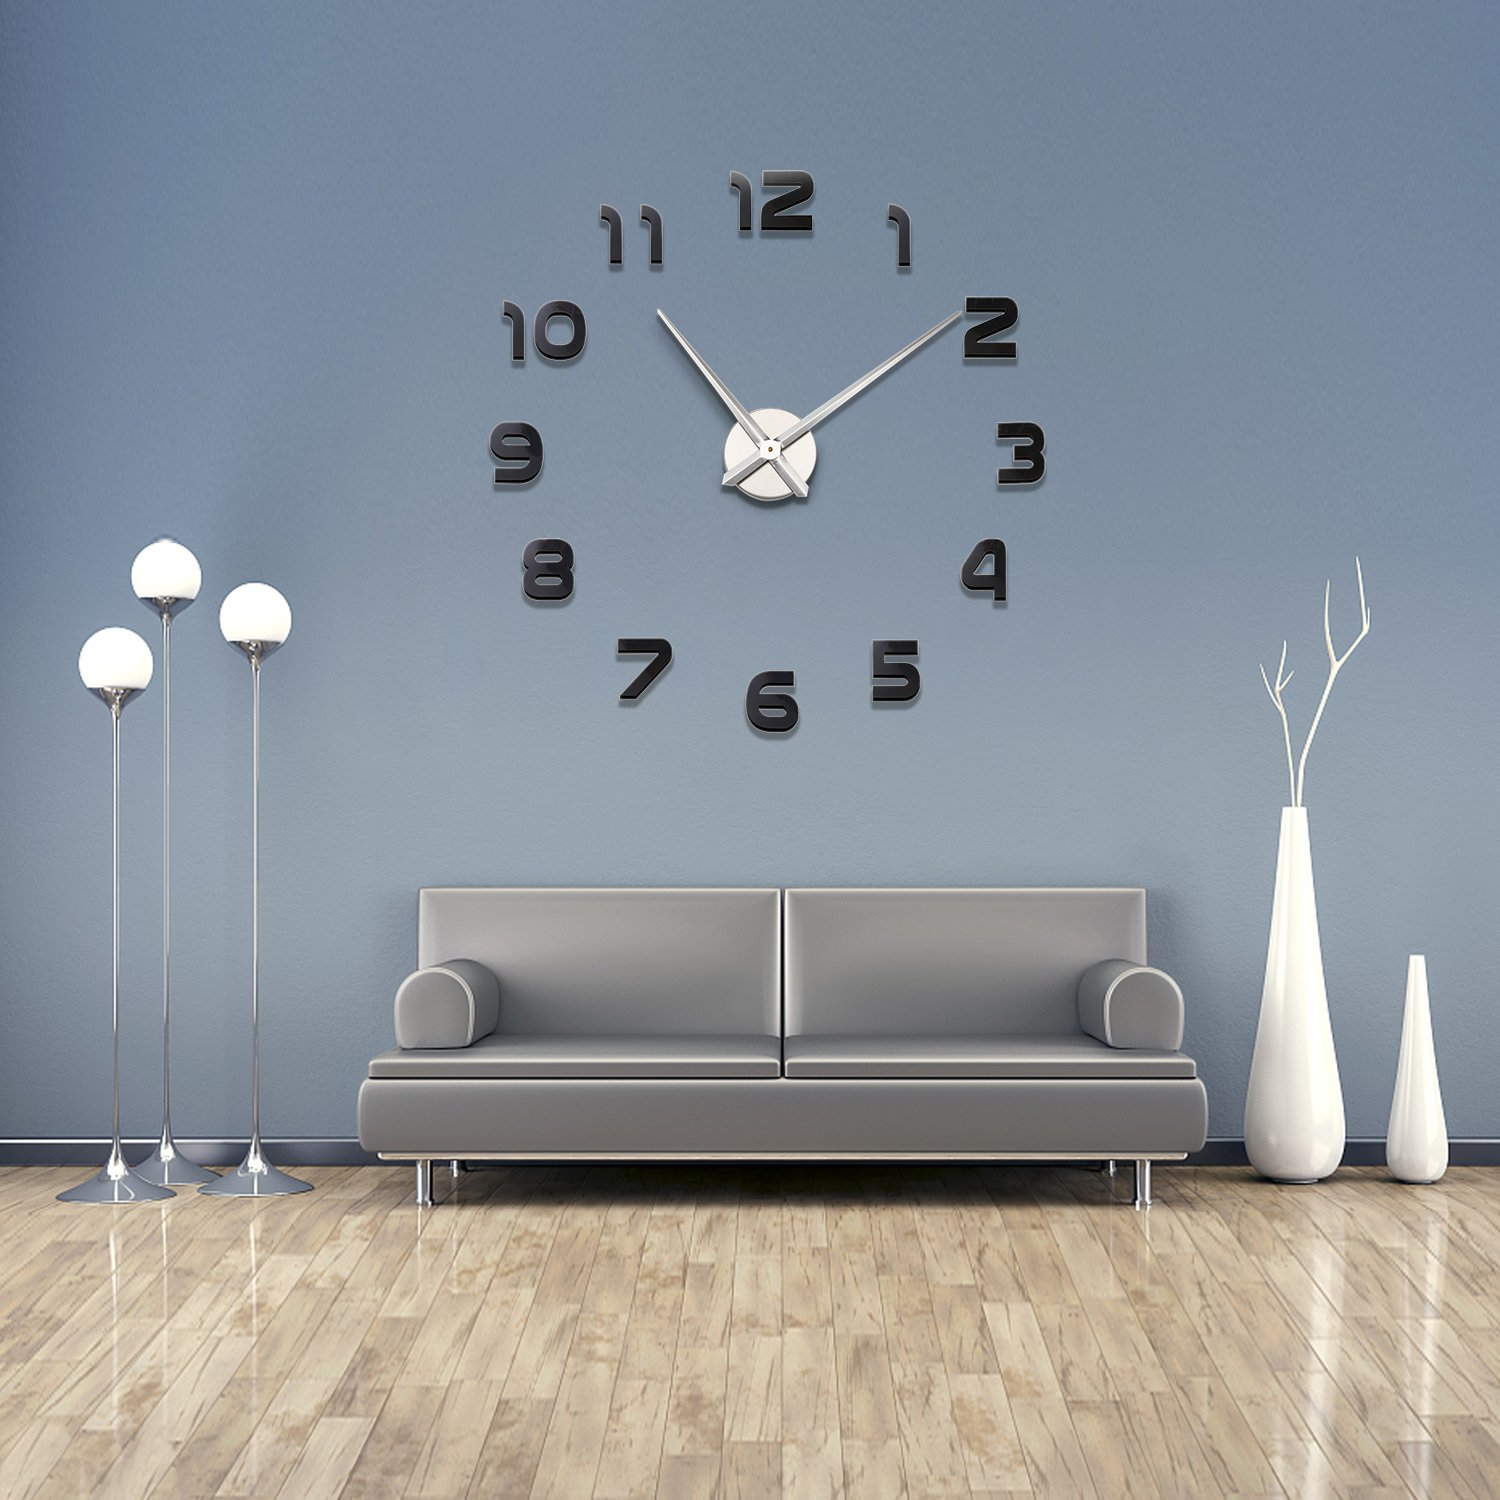 Soledi Wall Clock Modern DIY 3D Sticker Number Framless Clock Home